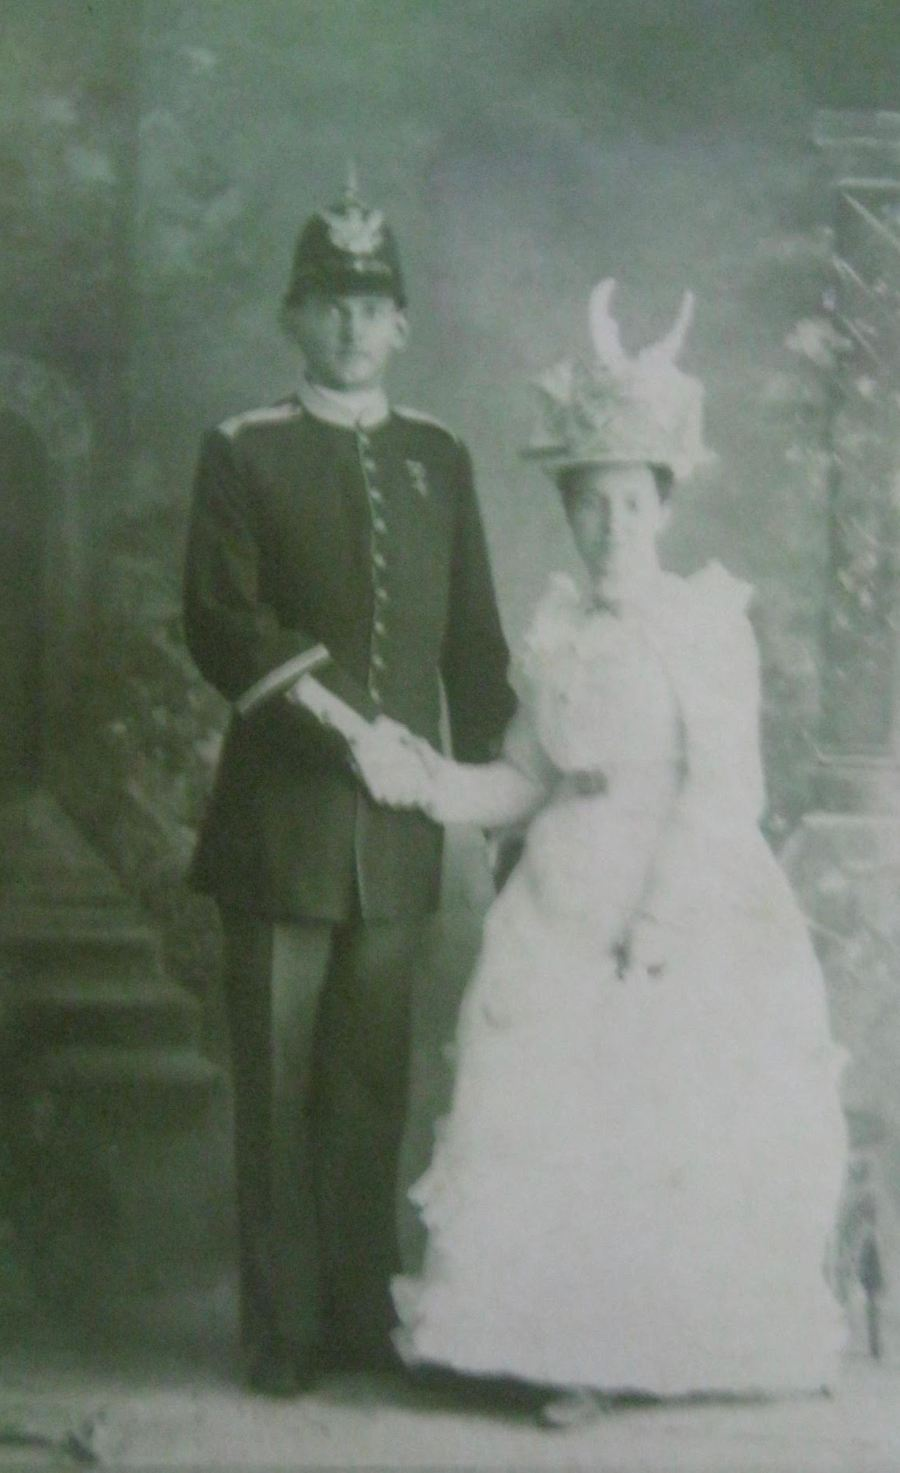 Goodrich was in his full dress uniform when he and Carrie Belle were married during the Spanish-American War. She was 14 when they got hitched. Photo provided